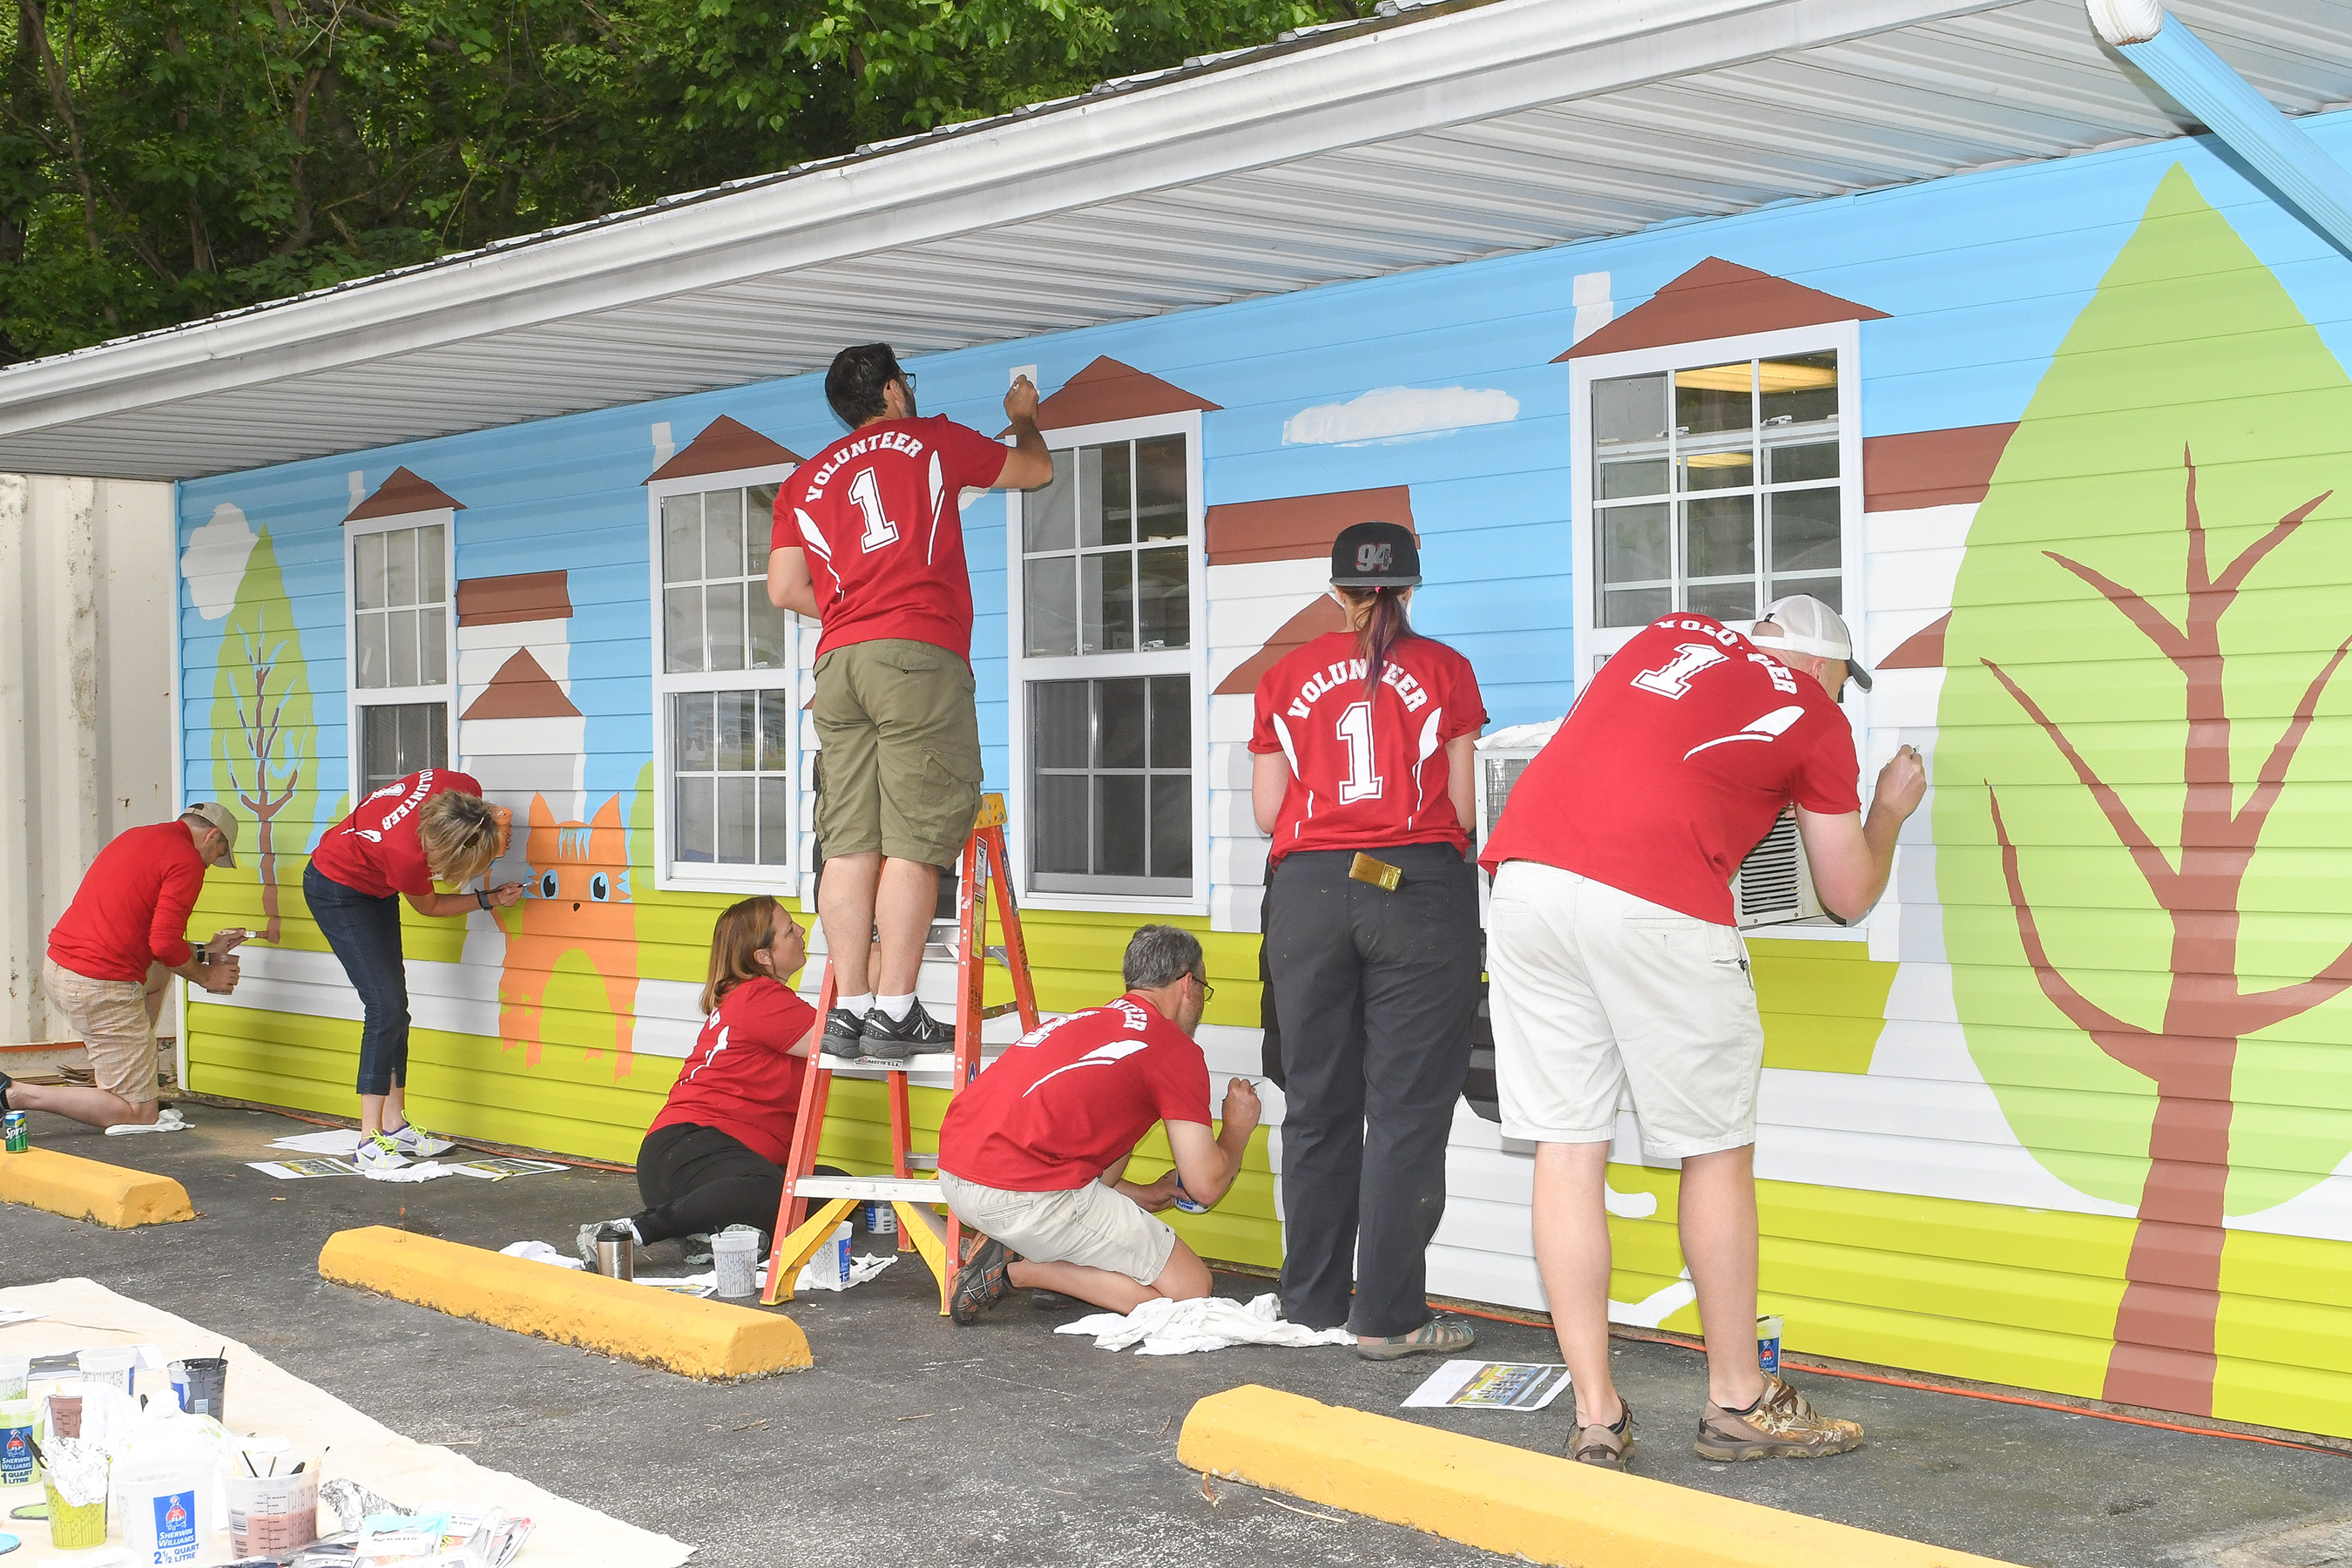 The Belleville Area Humane Society in Illinois received a number of upgrades inside and out, including a mural painted by Purina employees.